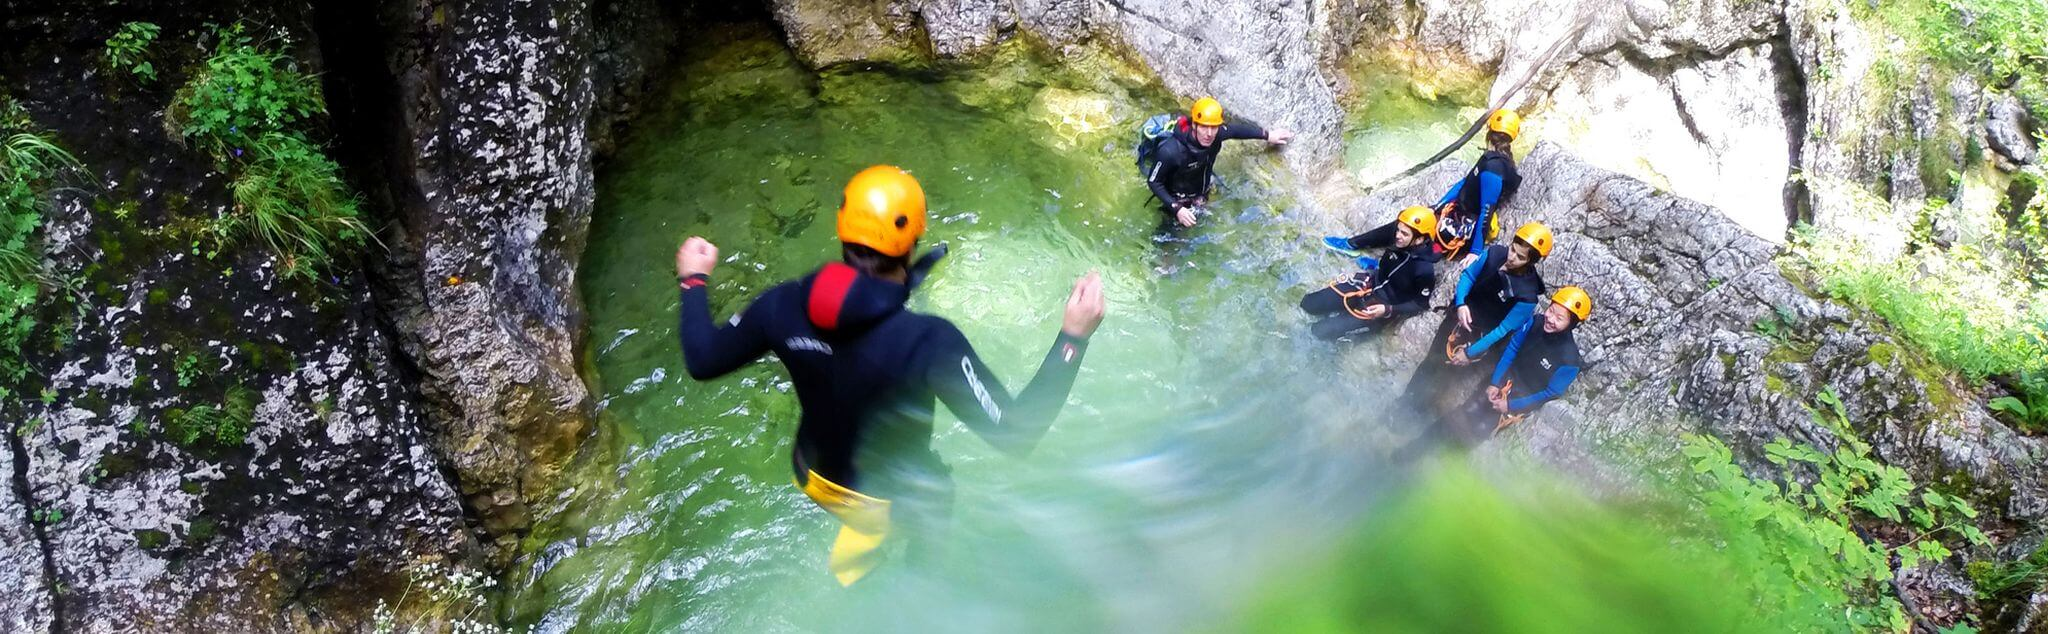 Canyoning in Gloucestershire